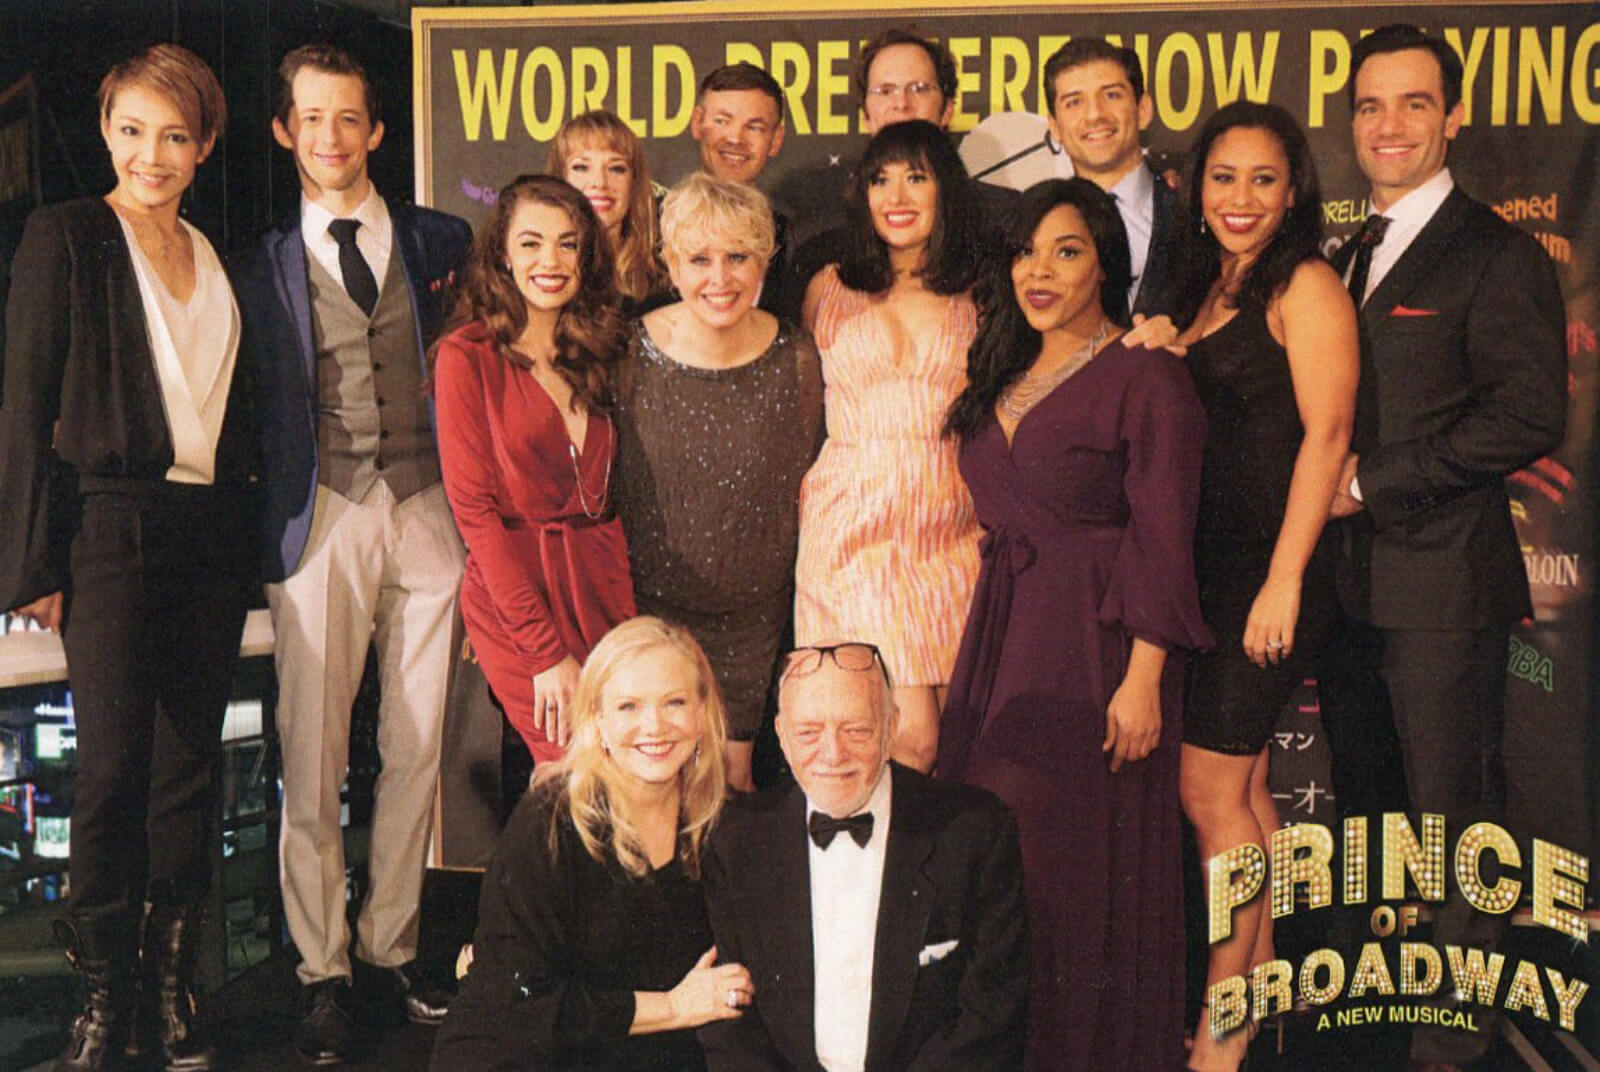 Susan Stroman and Hal Prince with the cast of Prince of Broadway opening night in Japan. They are all dressed in celebratory garb.